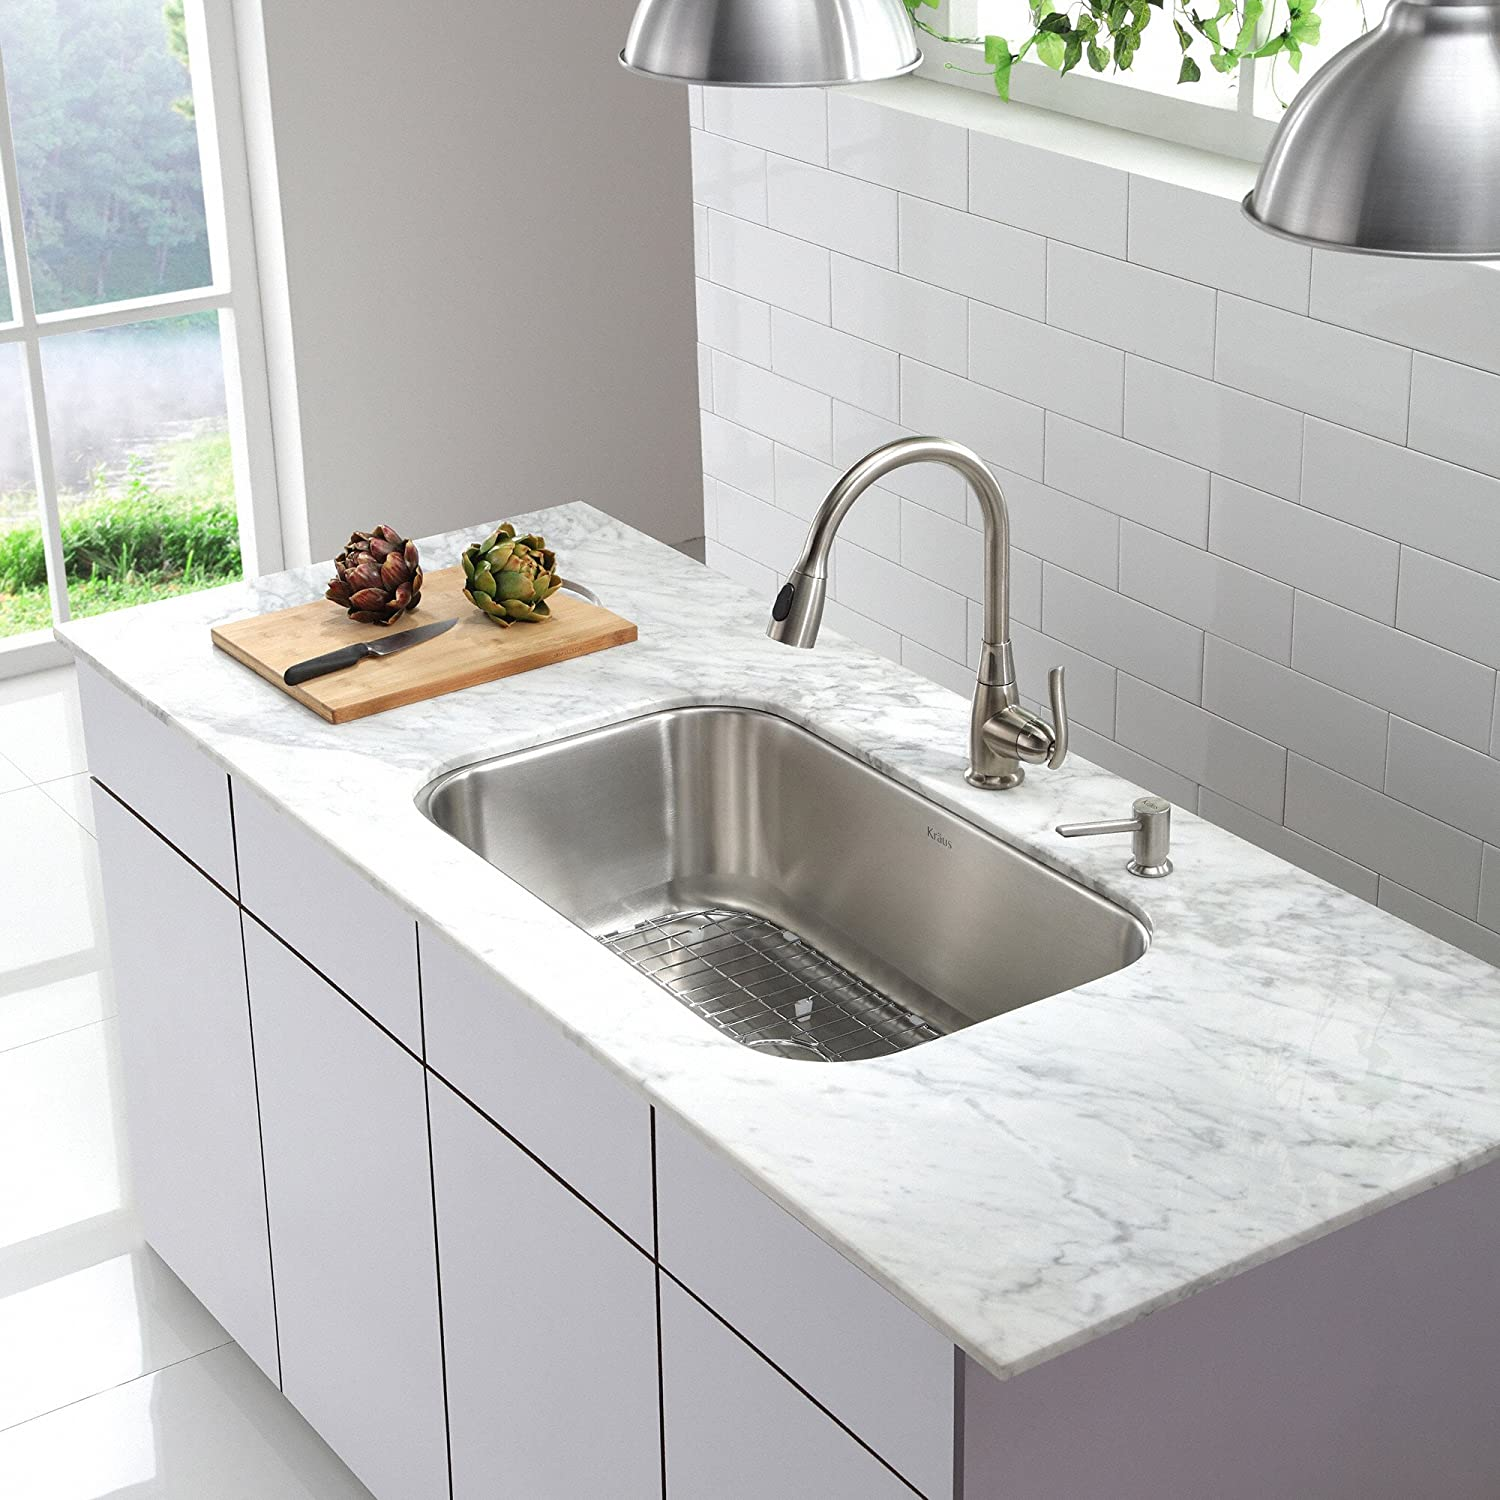 Lovely Kraus KBU14 31 1/2 Inch Undermount Single Bowl 16 Gauge Stainless Steel  Kitchen Sink     Amazon.com